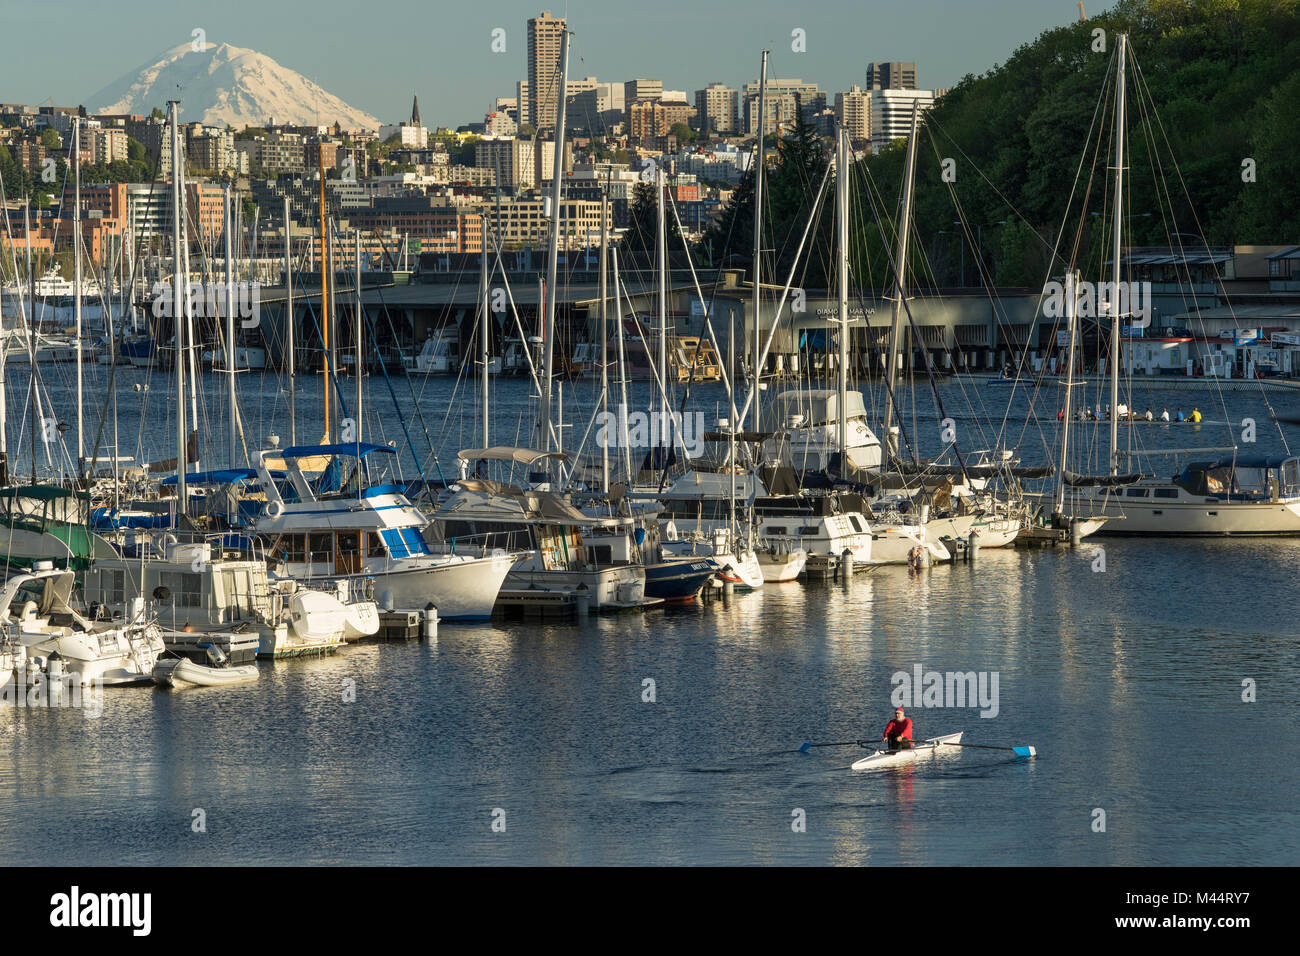 United States, Washington, Seattle, Rowing on Lake Union with the city  and Mount Rainier in the background - Stock Image